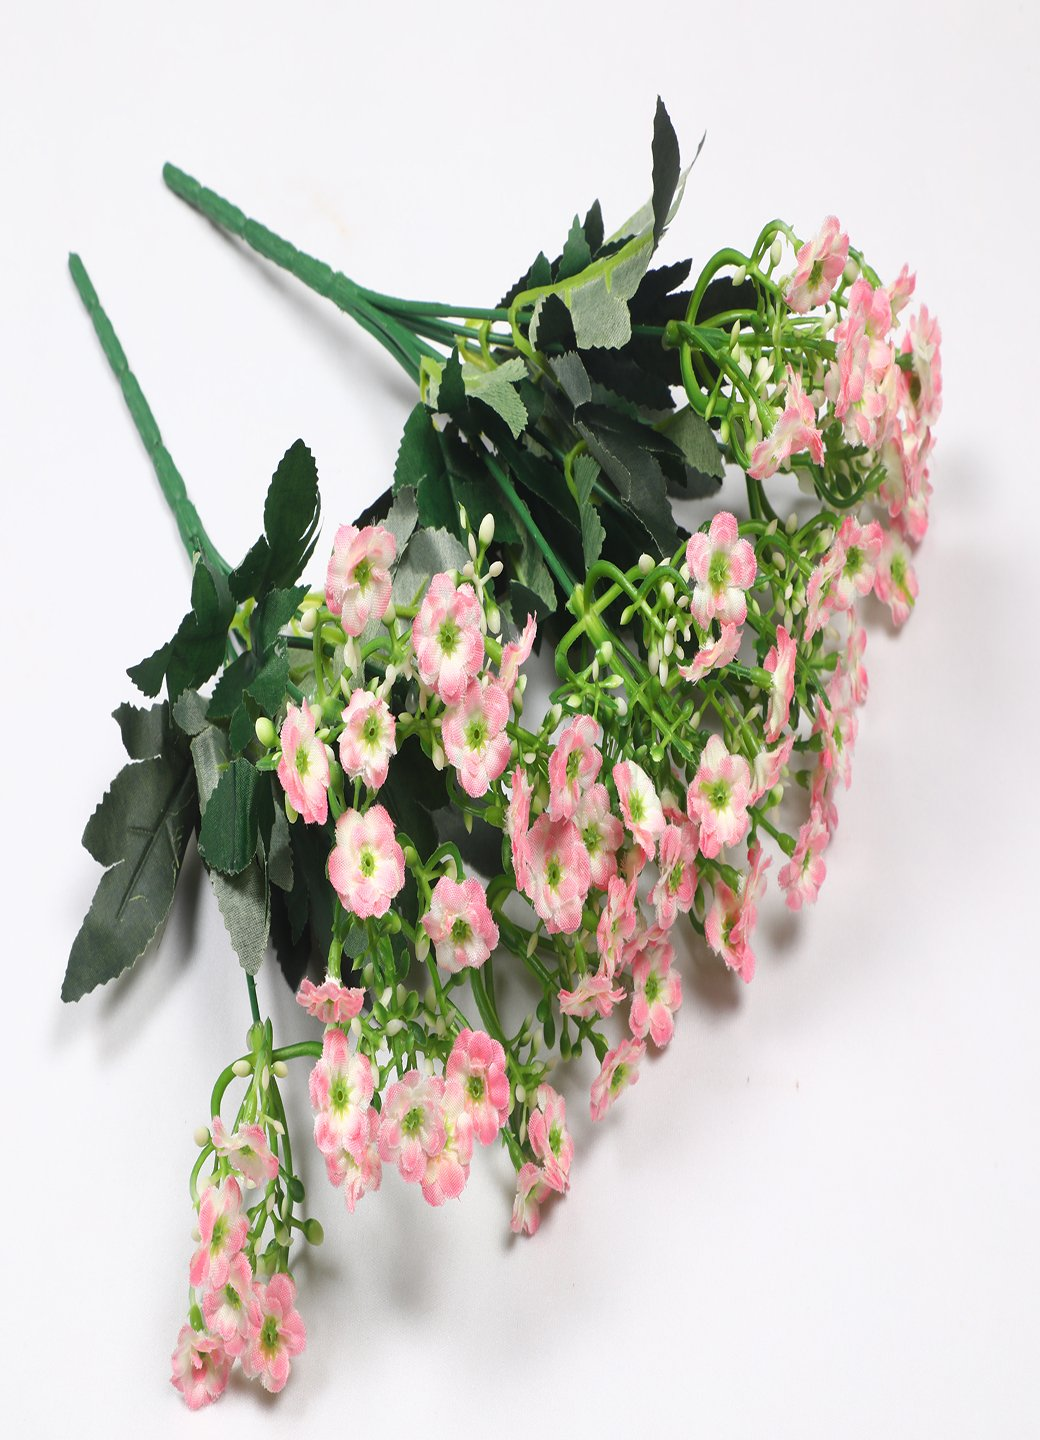 Dark Pink Artificial Flower Bunch Home, Office, Room, Restaurant, Hotel, Balcony, Kitchen, Garden Decor, Indoor (Pack of 2) - Artificial Flowers & Plants - PolliNation